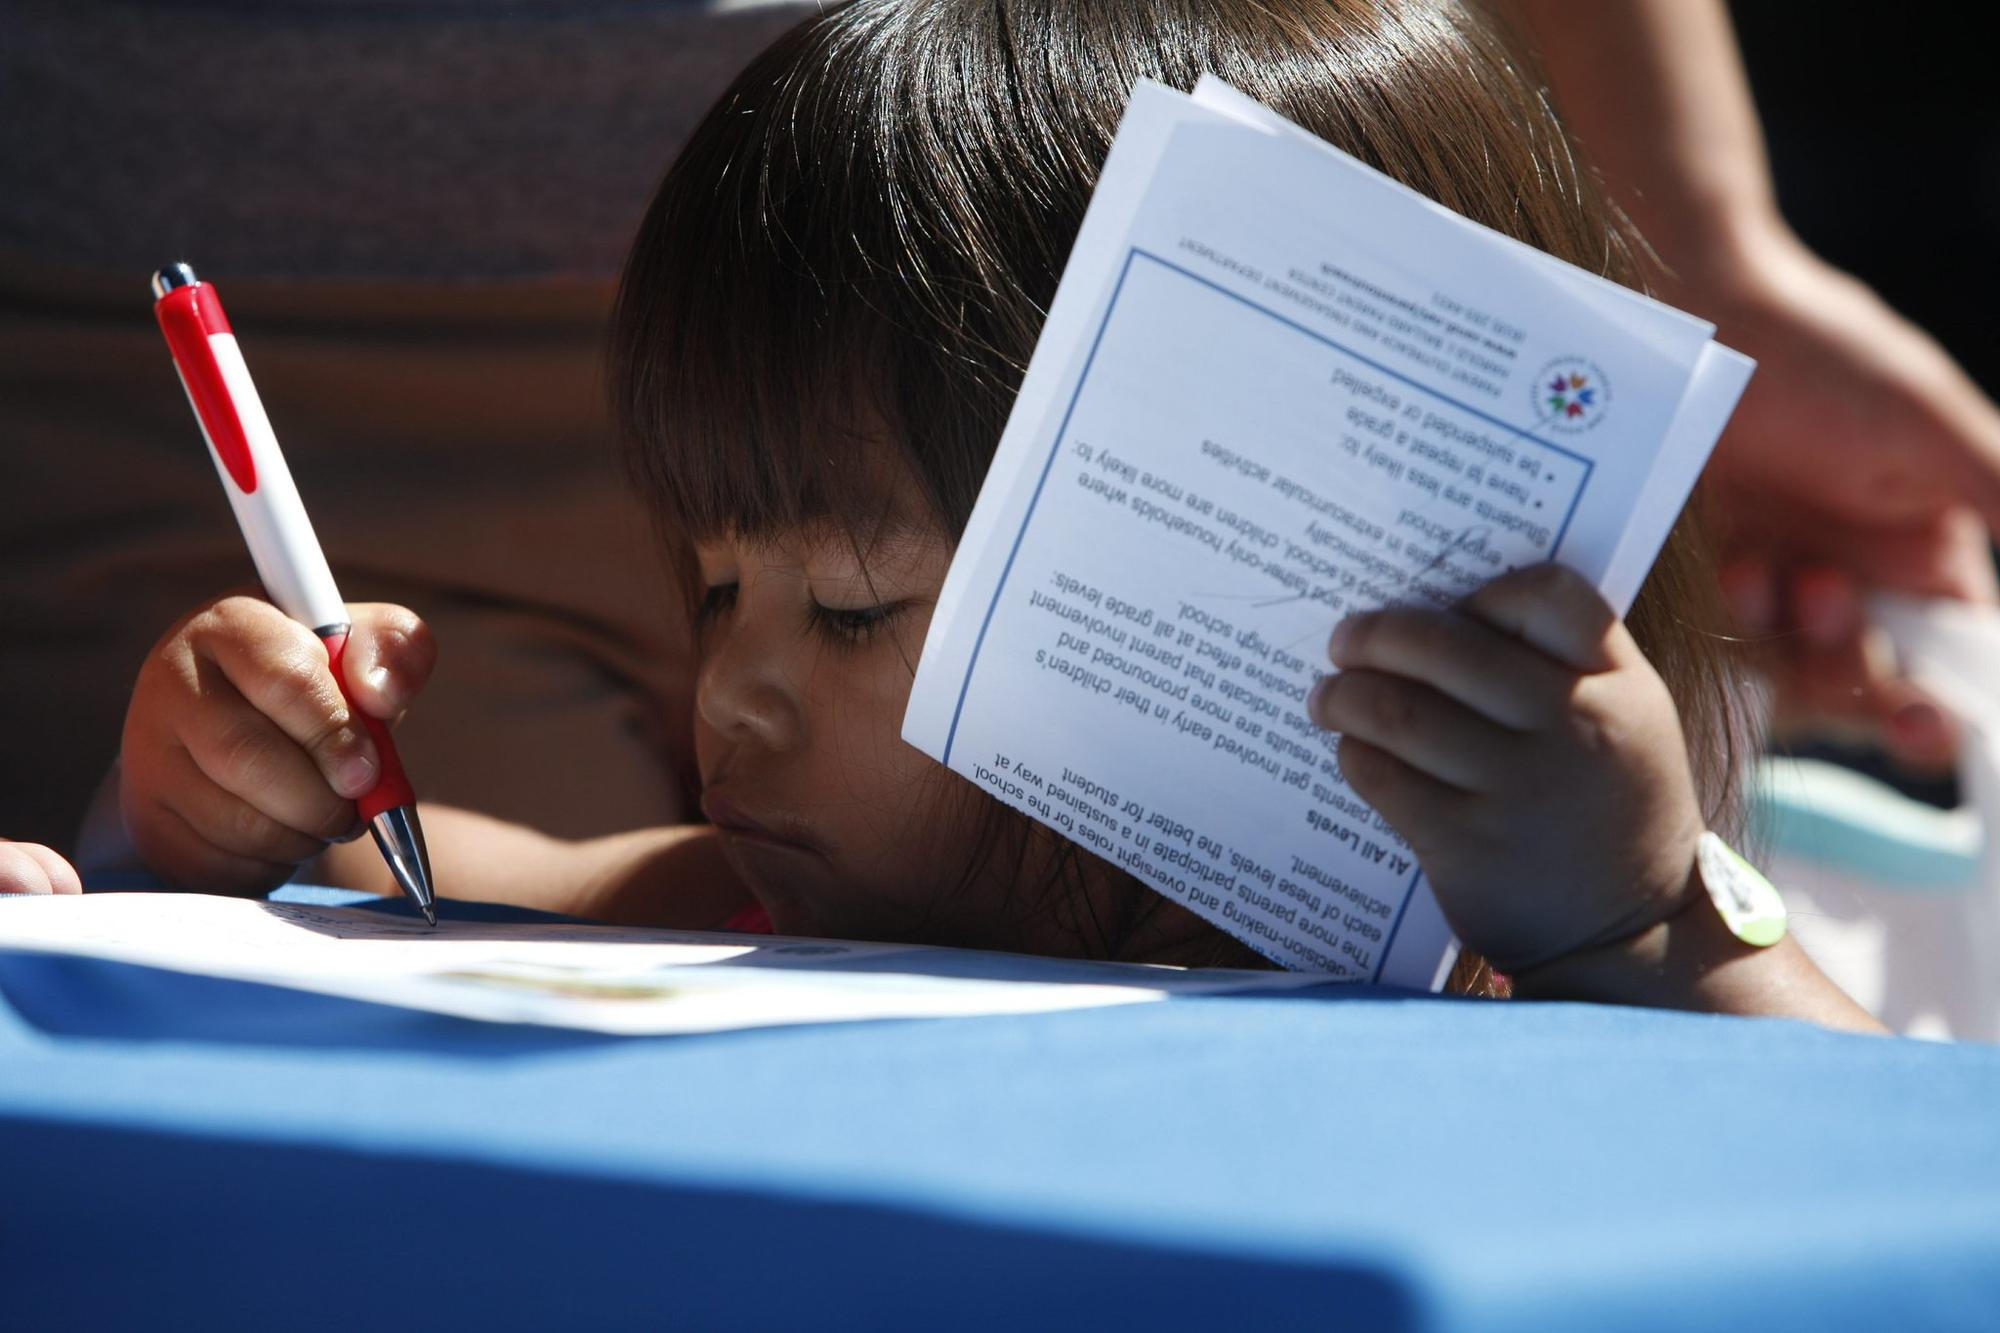 Skyler Smith of Serra Mesa prepares for preschool in the San Diego Unified School District. File photo.